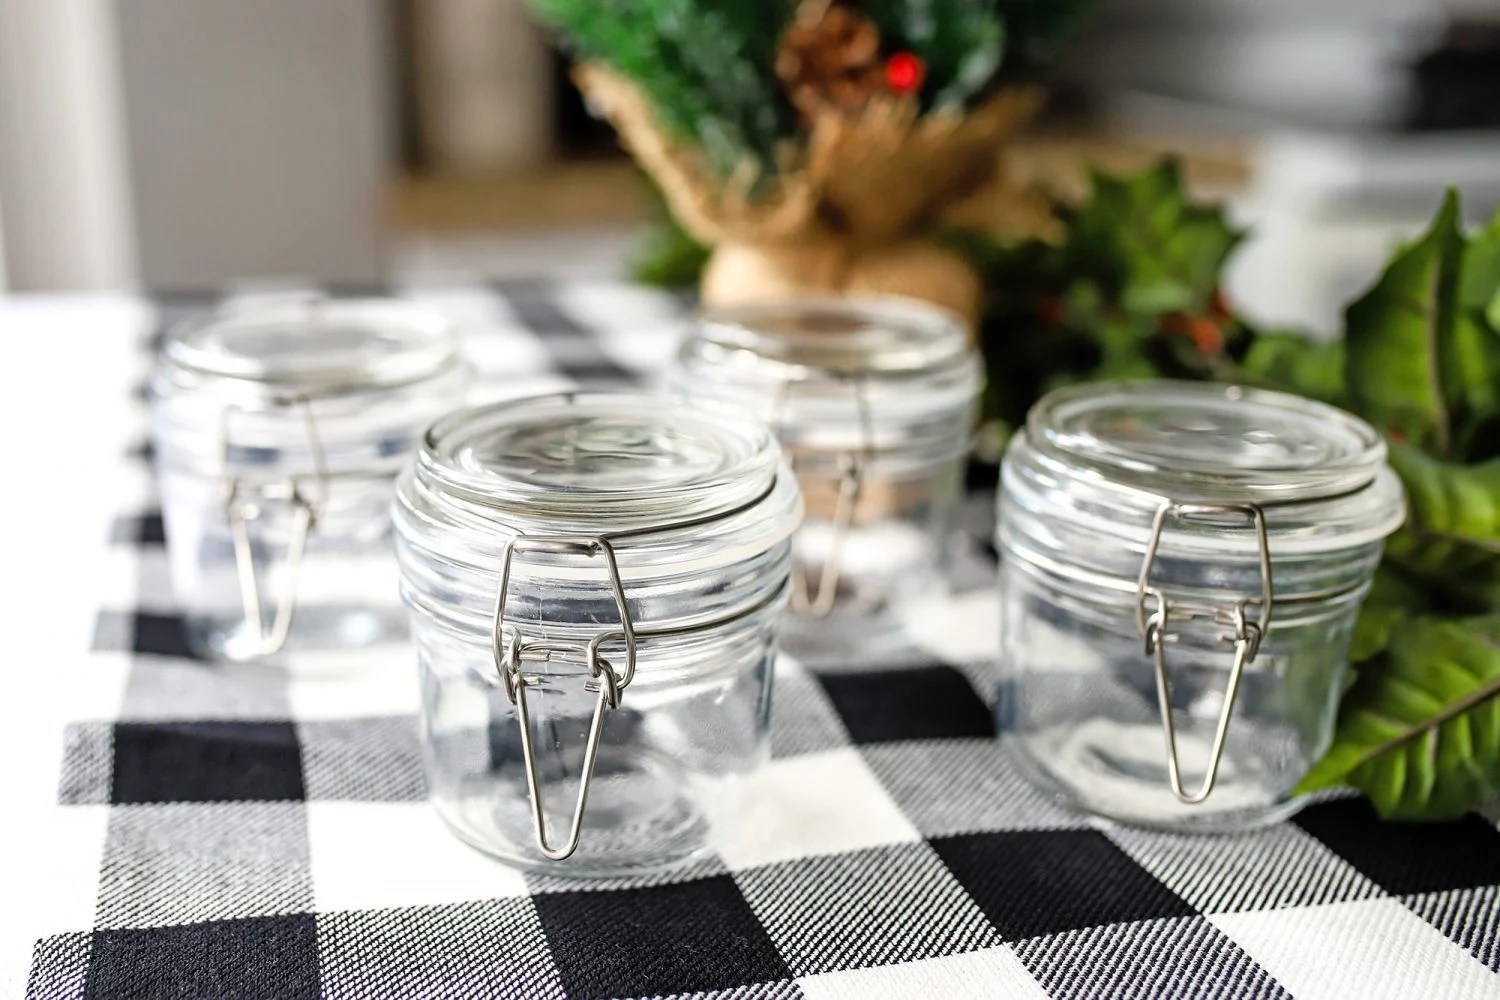 jars sitting on a holiday table